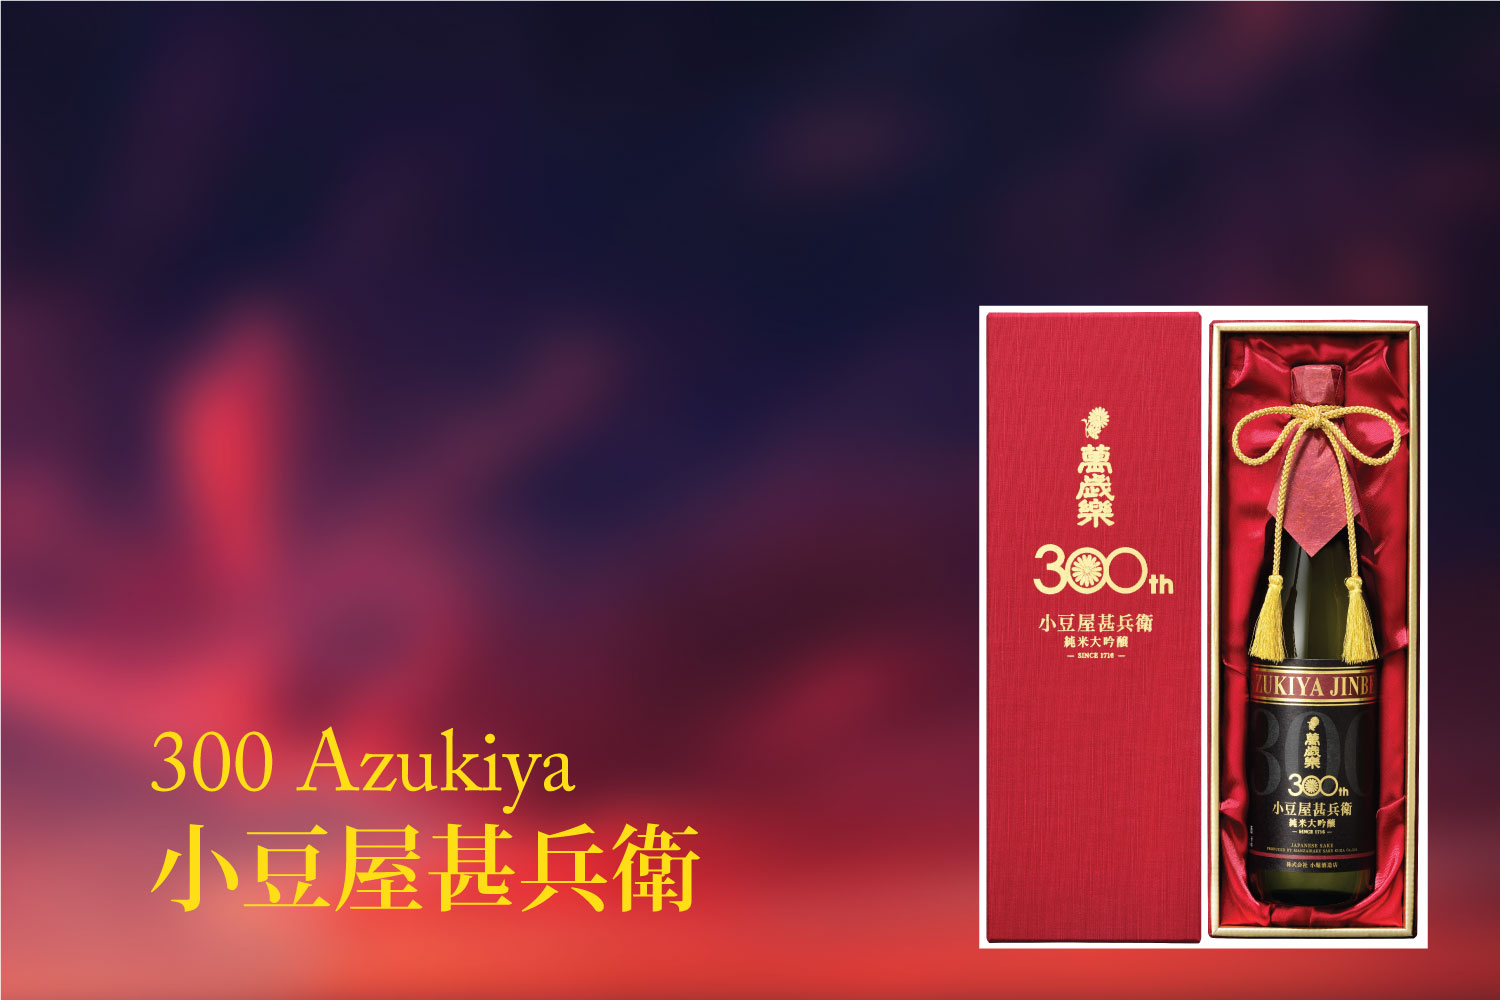 limited-bottle-300-azukiya-japanese-sake